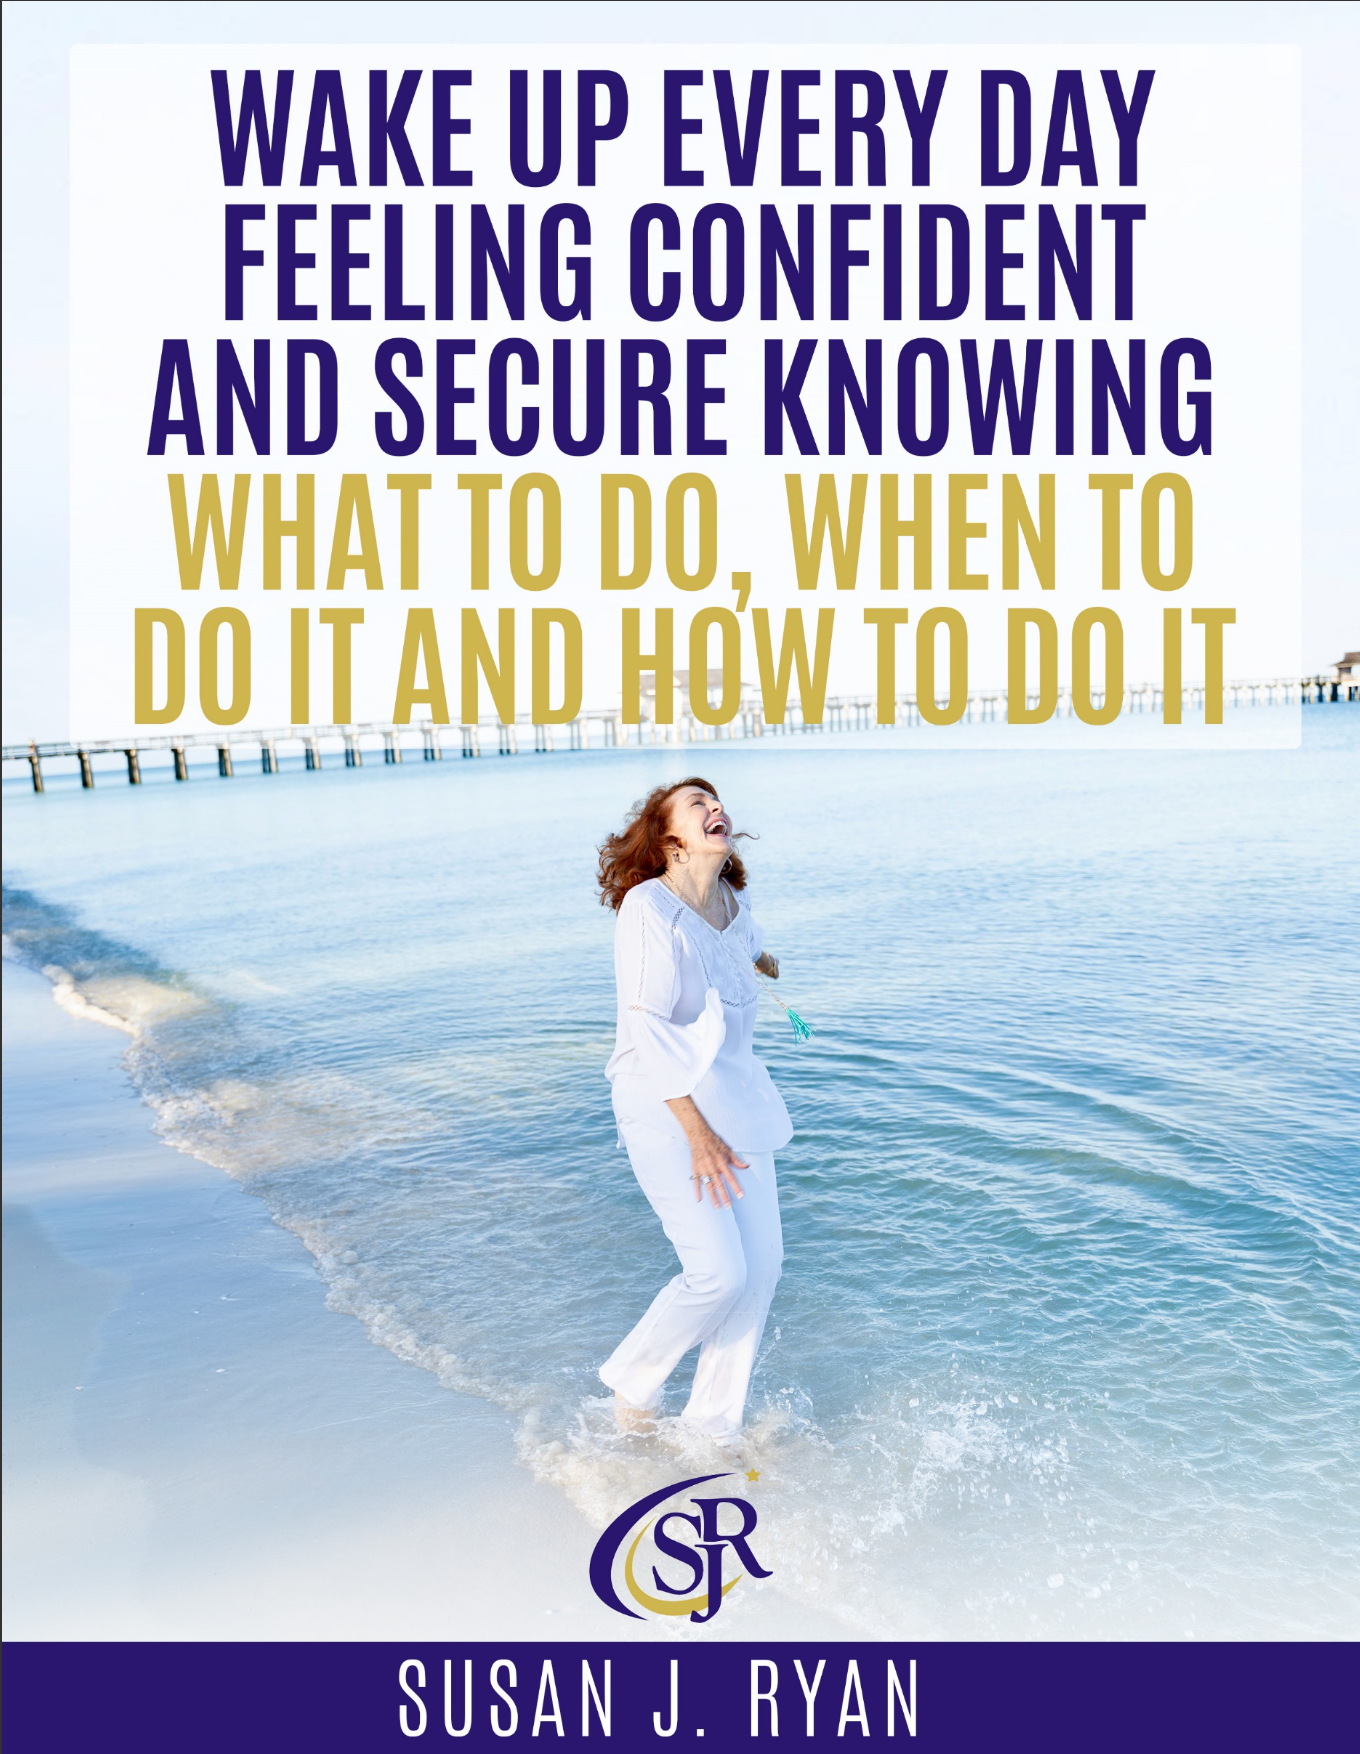 2020 Wake Up Every Day Feeling Confident and Secure Cover Page